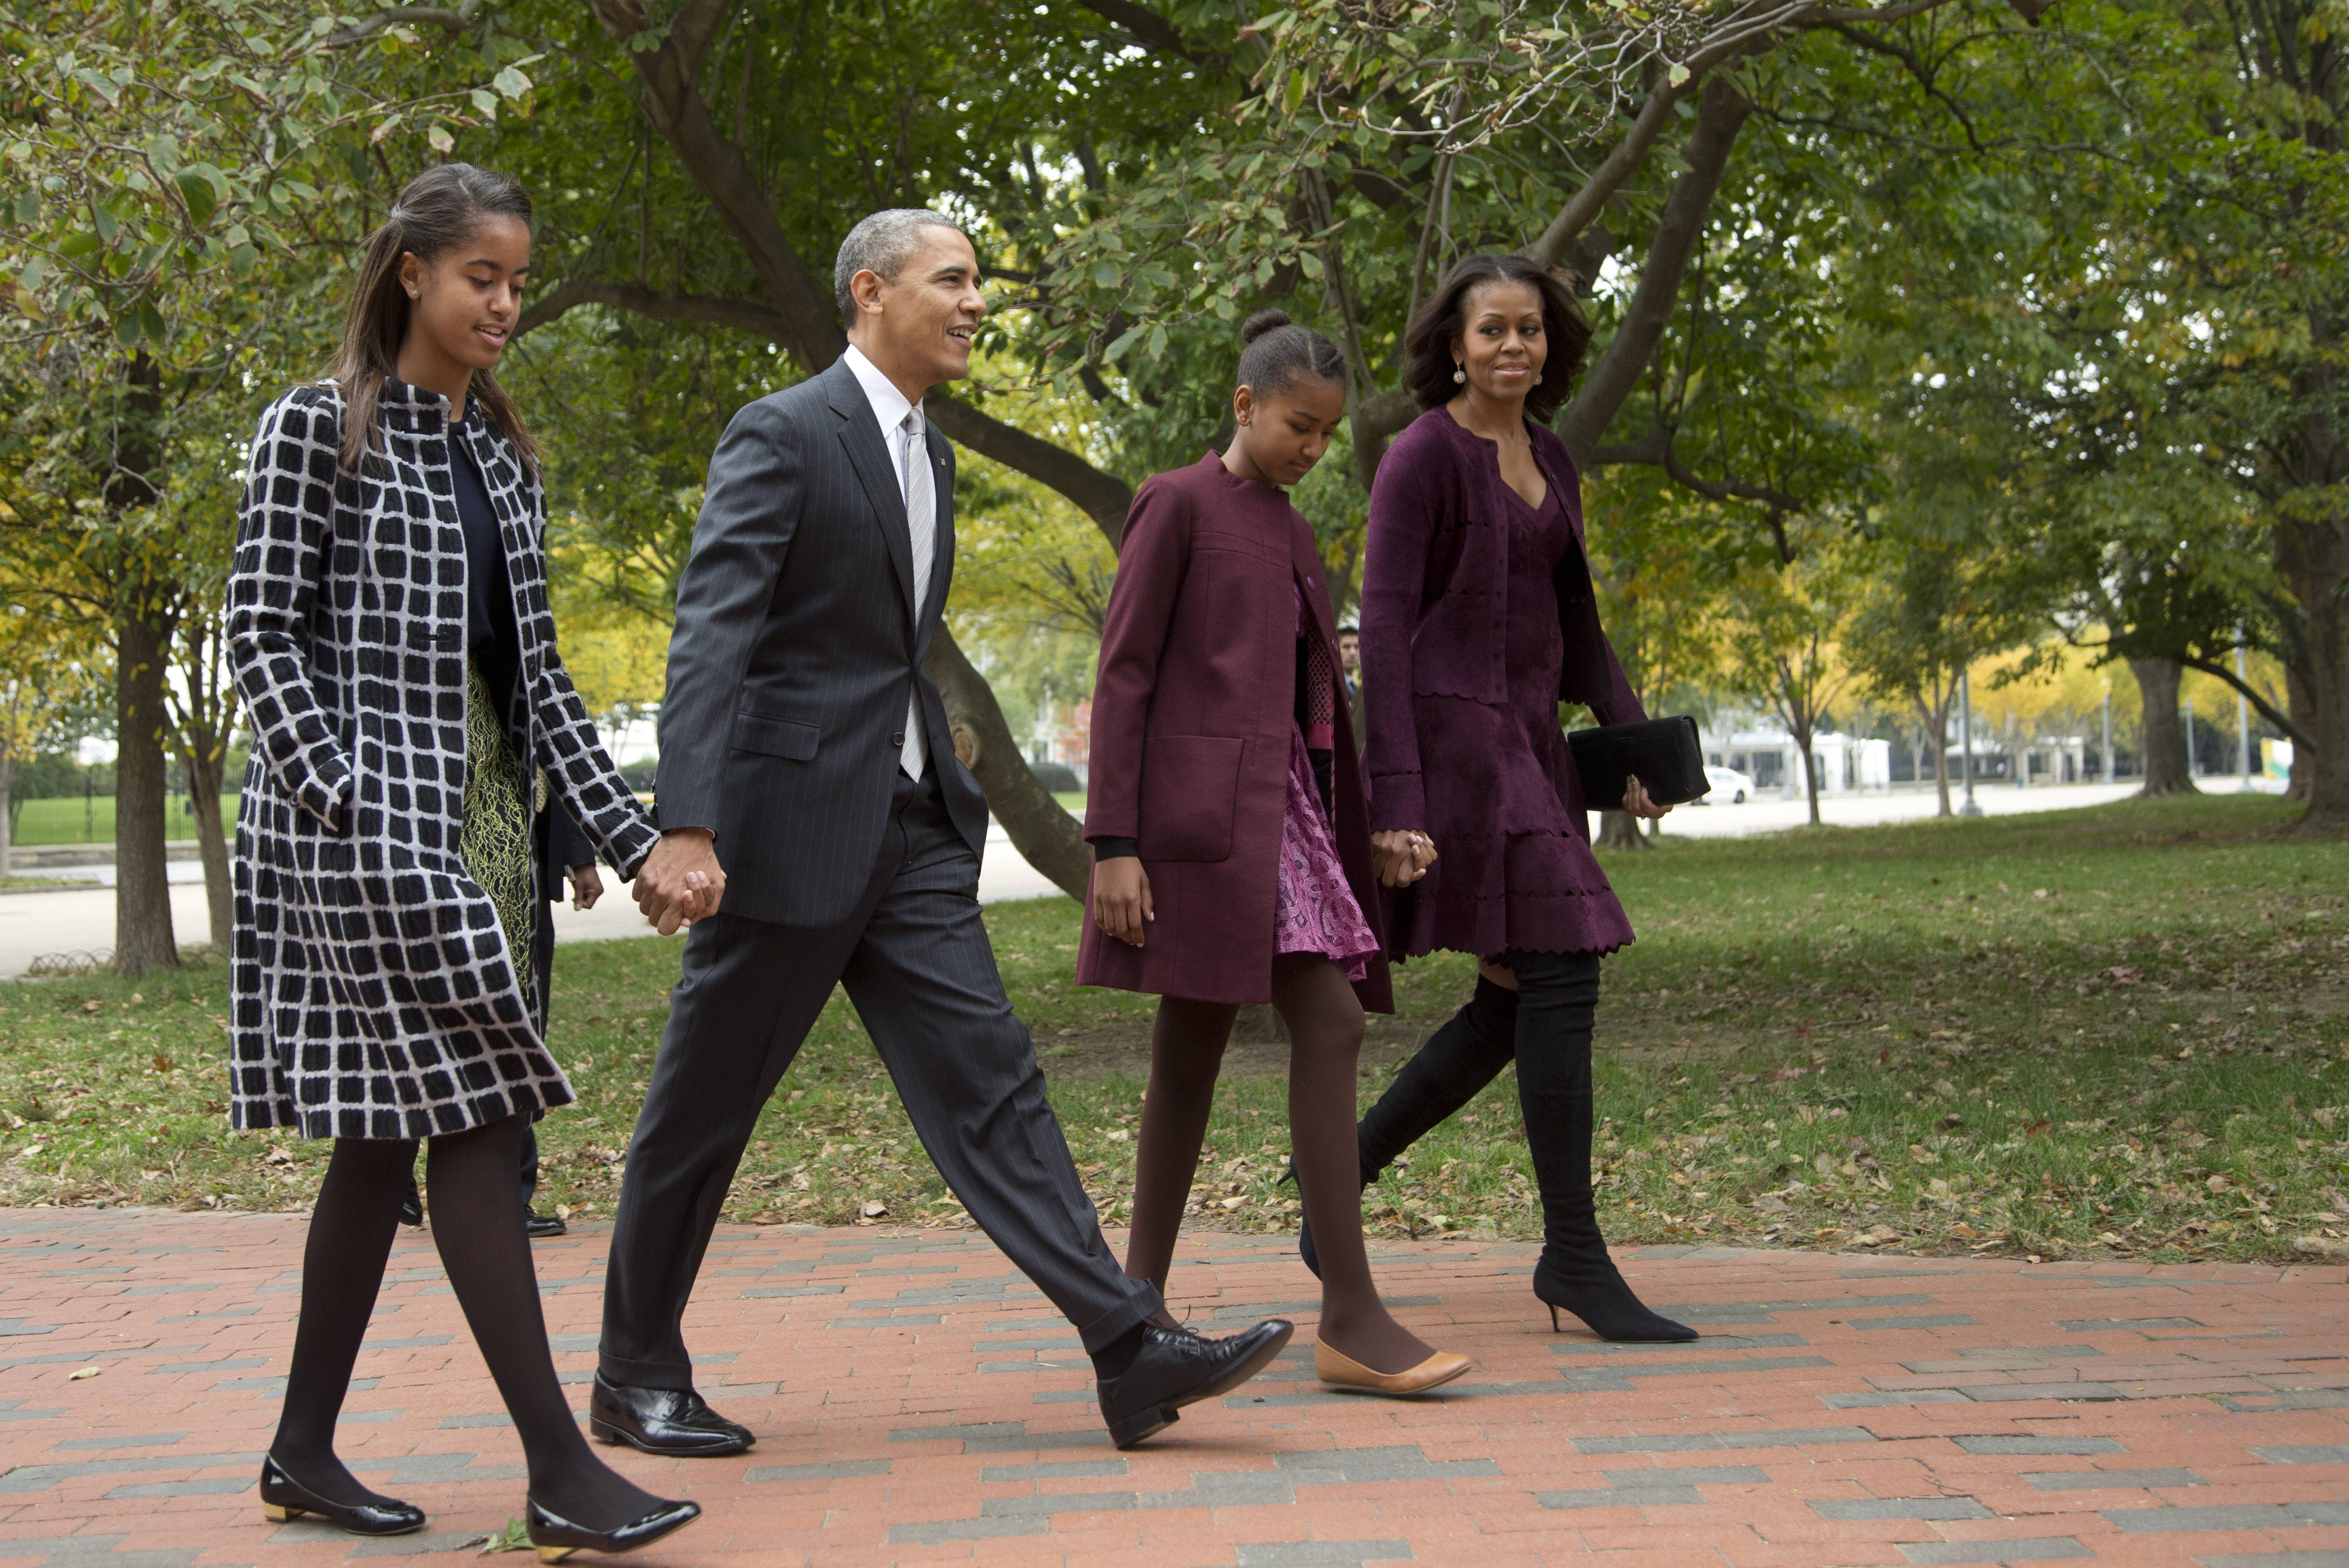 President Barack Obama, with first lady Michelle Obama and their daughters Malia, left, and Sasha, walk through Lafayette Park from the White House in Washington, to attend a church service Oct. 27, 2013. President Obama is practically weepy at the thought of his daughter Malia going off to college, a milestone many months away that is on his mind now.